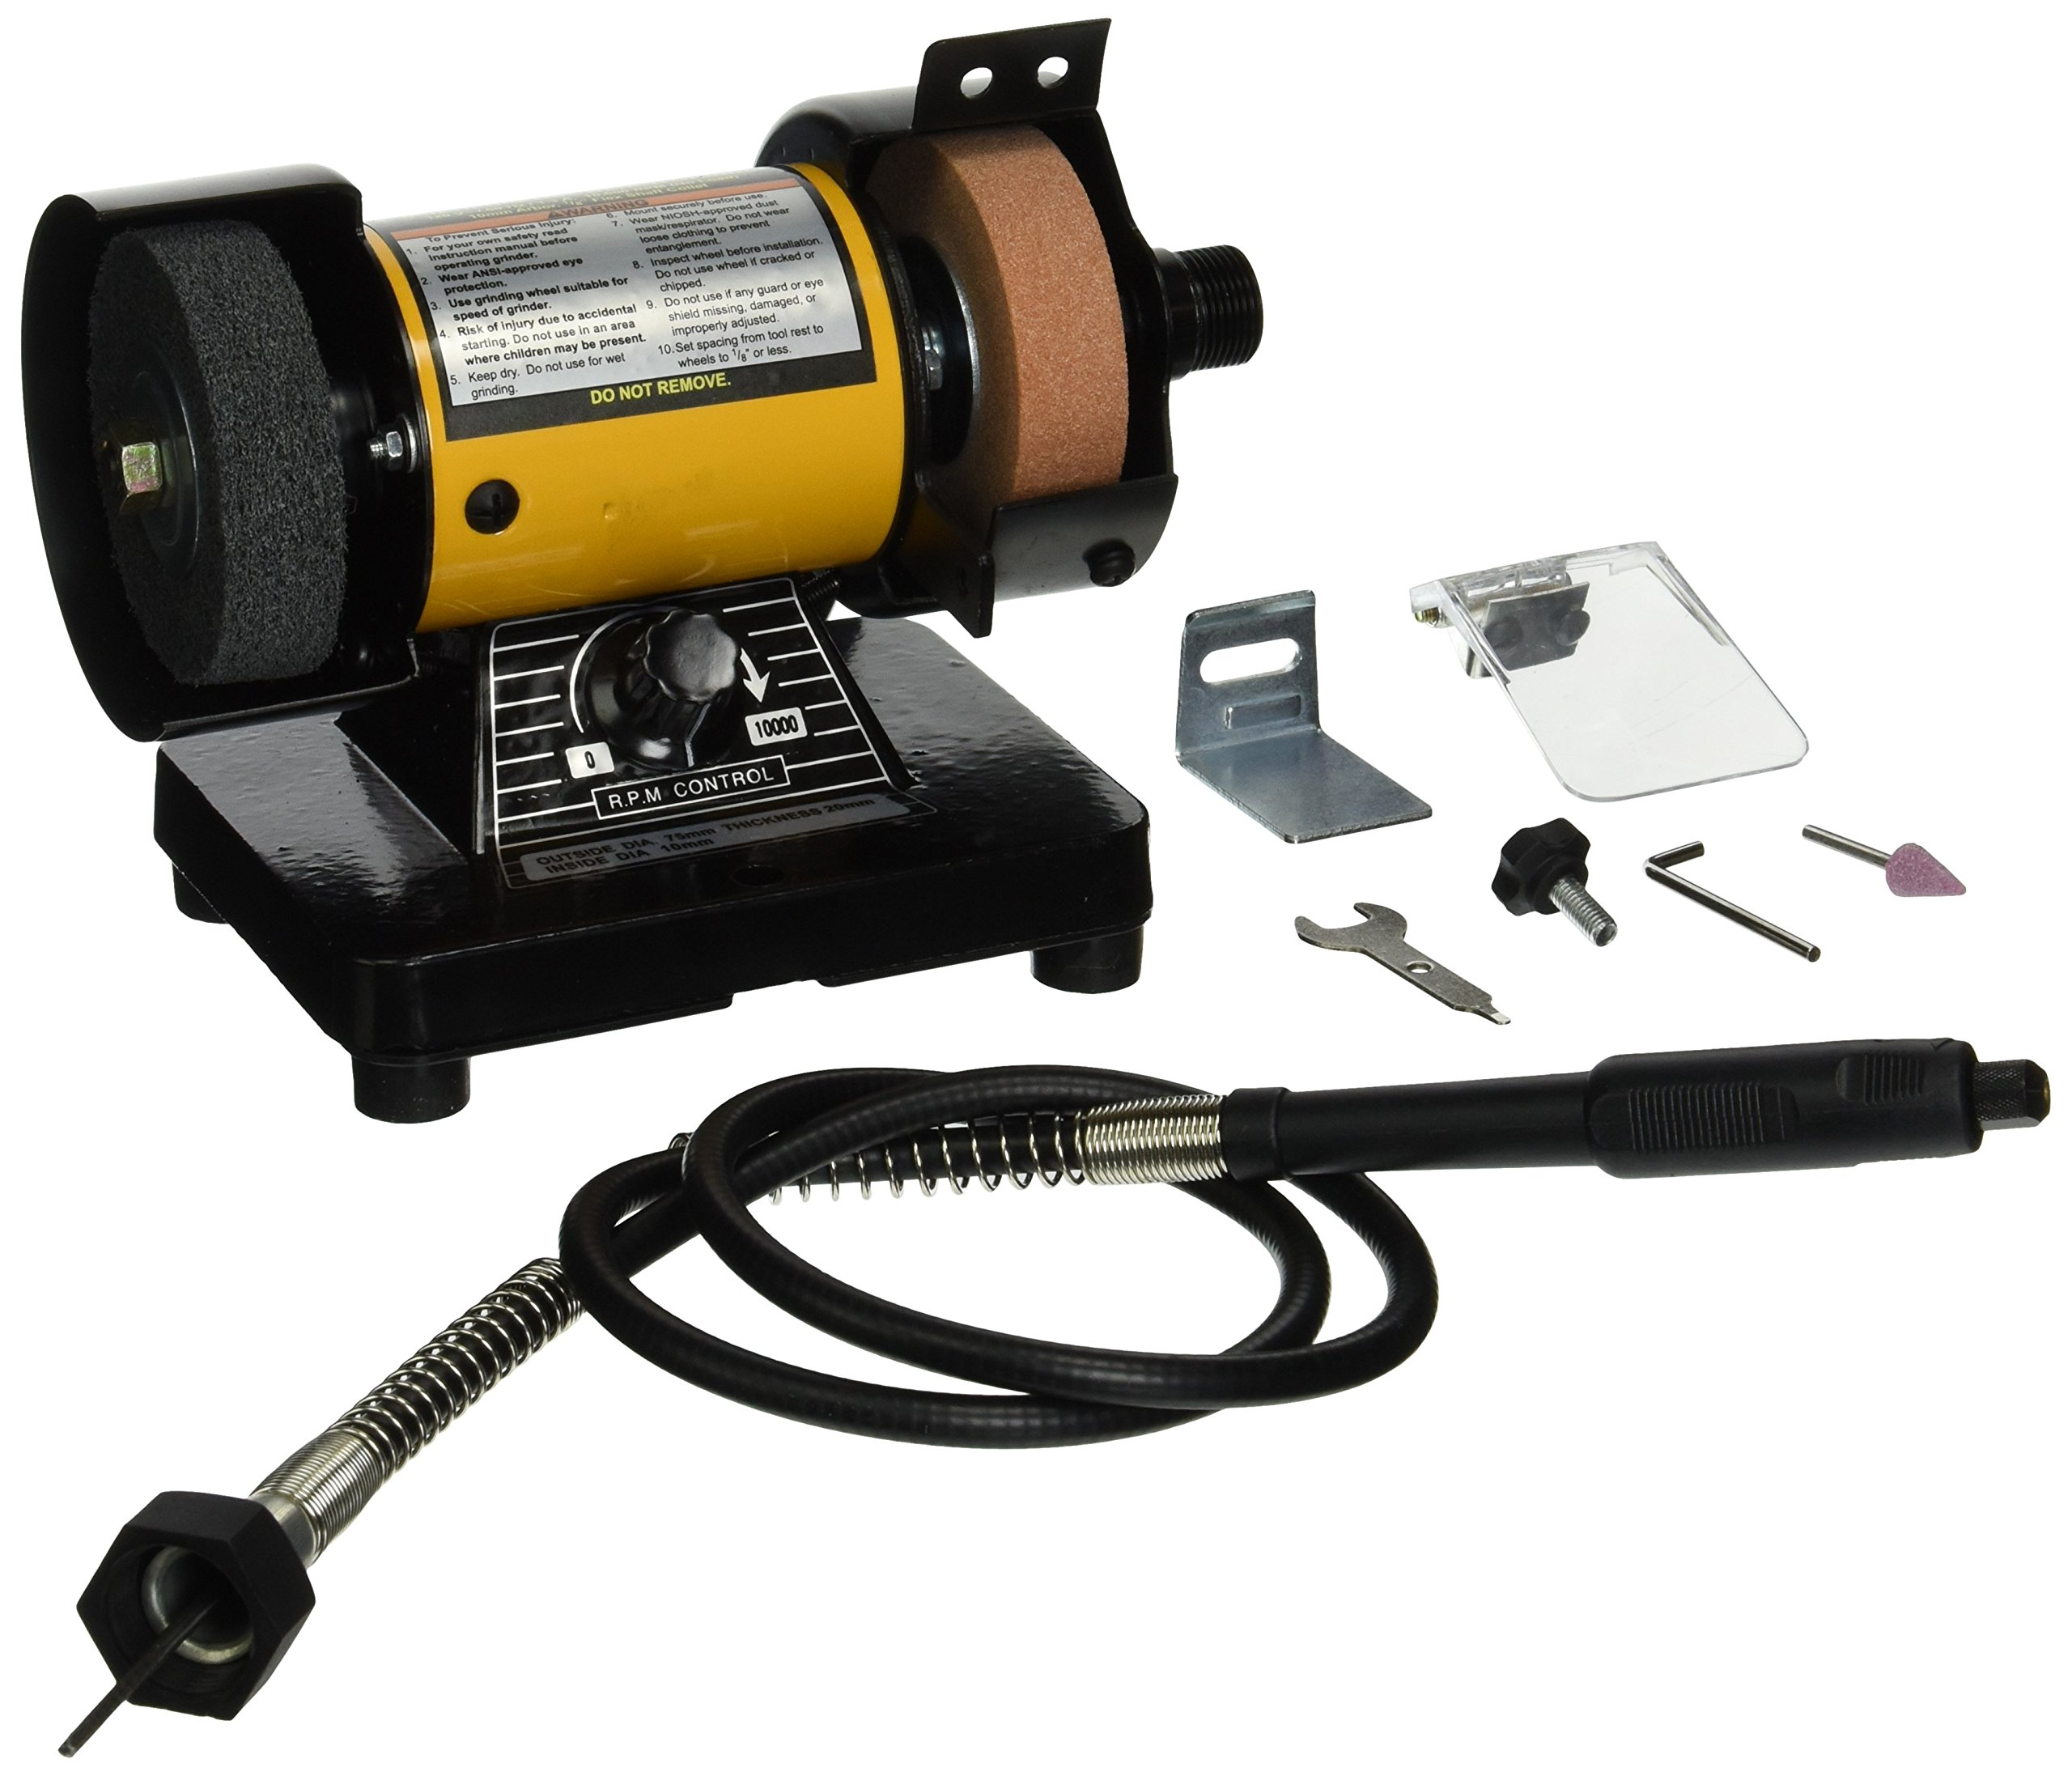 Truepower 199 Mini Multi Purpose Bench Grinder And Polisher With Flexible New